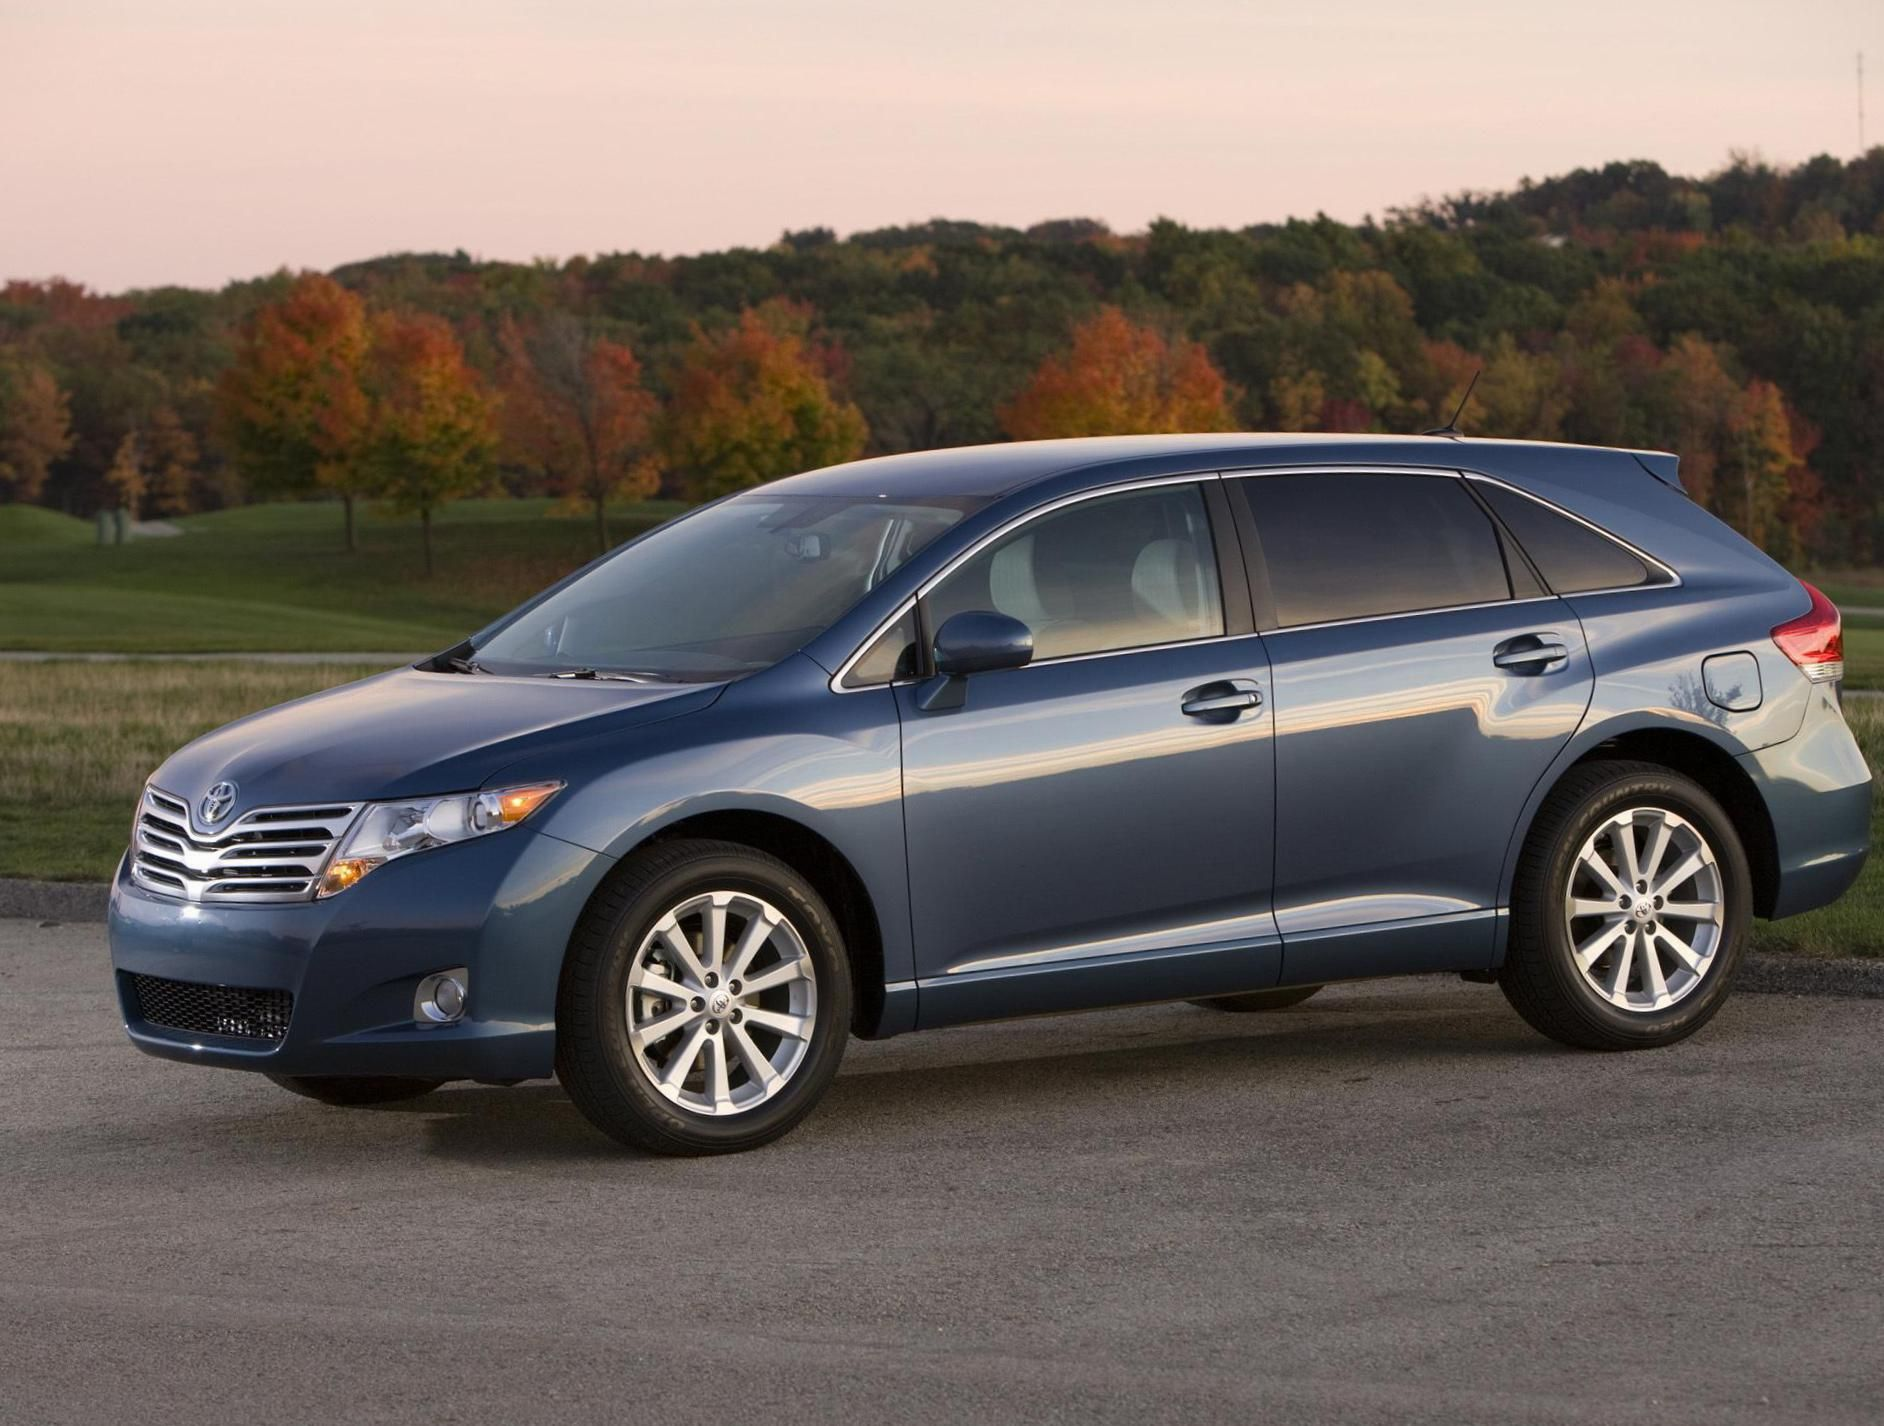 Find this pin and more on toyota venza